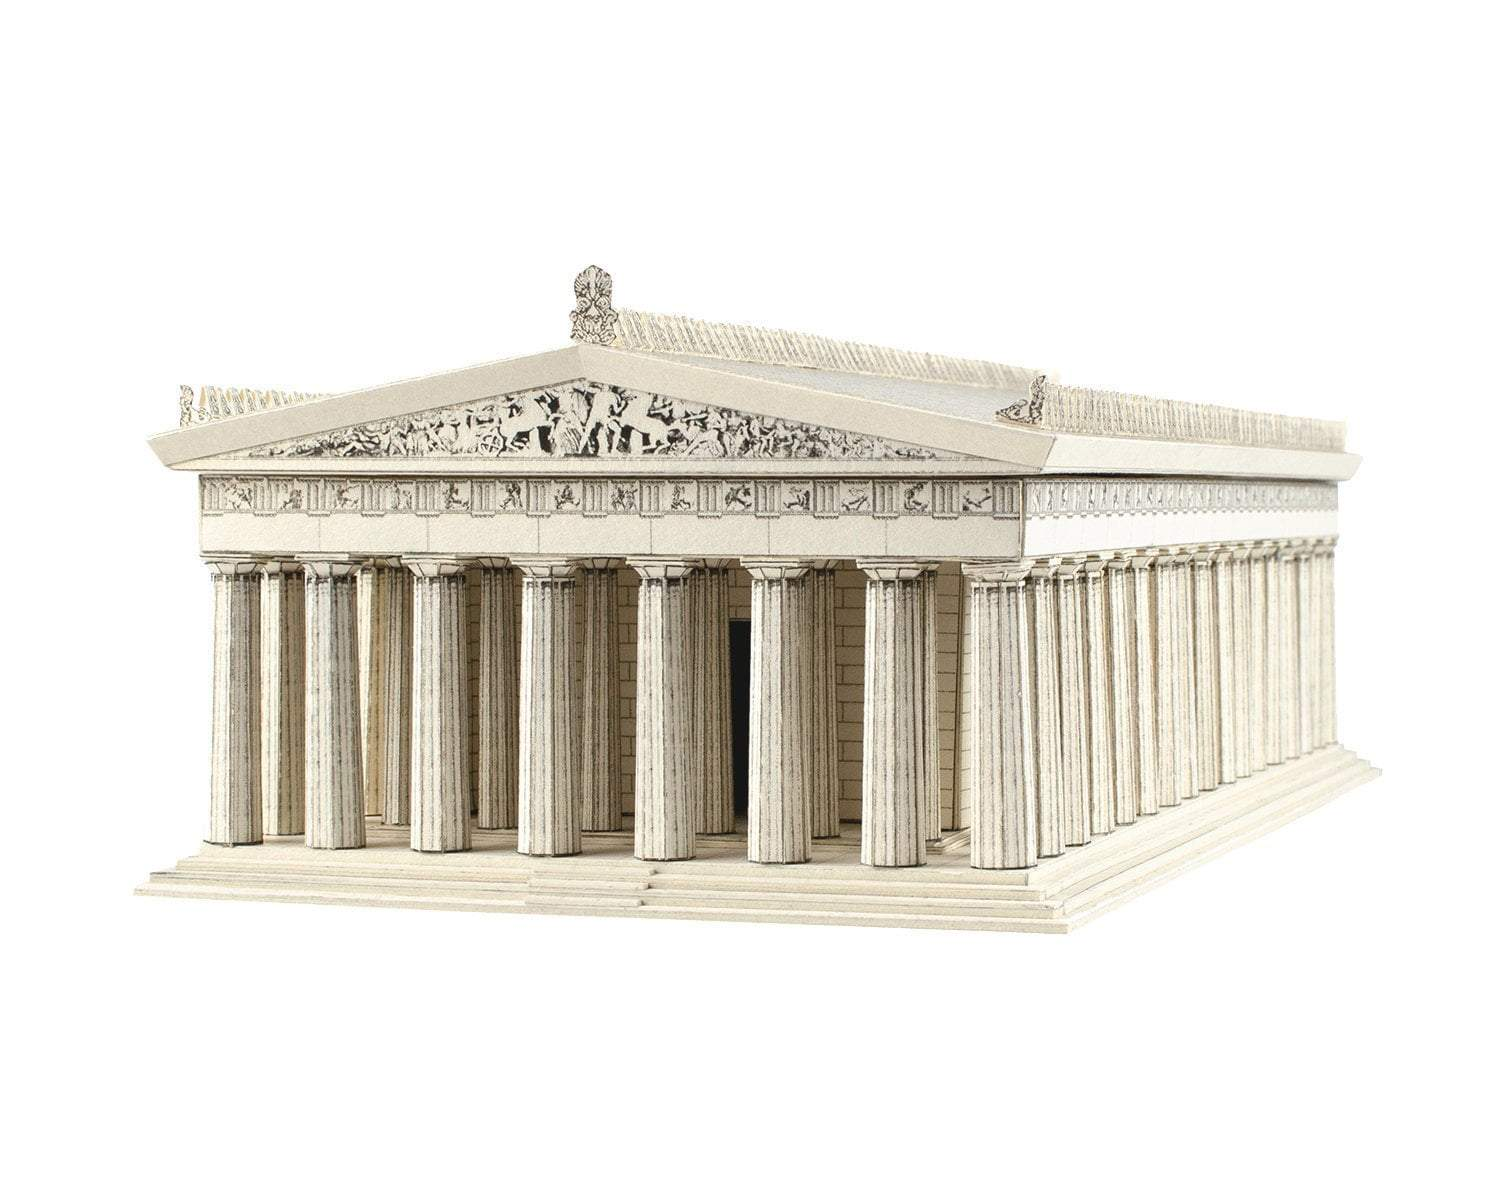 Paper Model Kit of Ancient Greek Temple